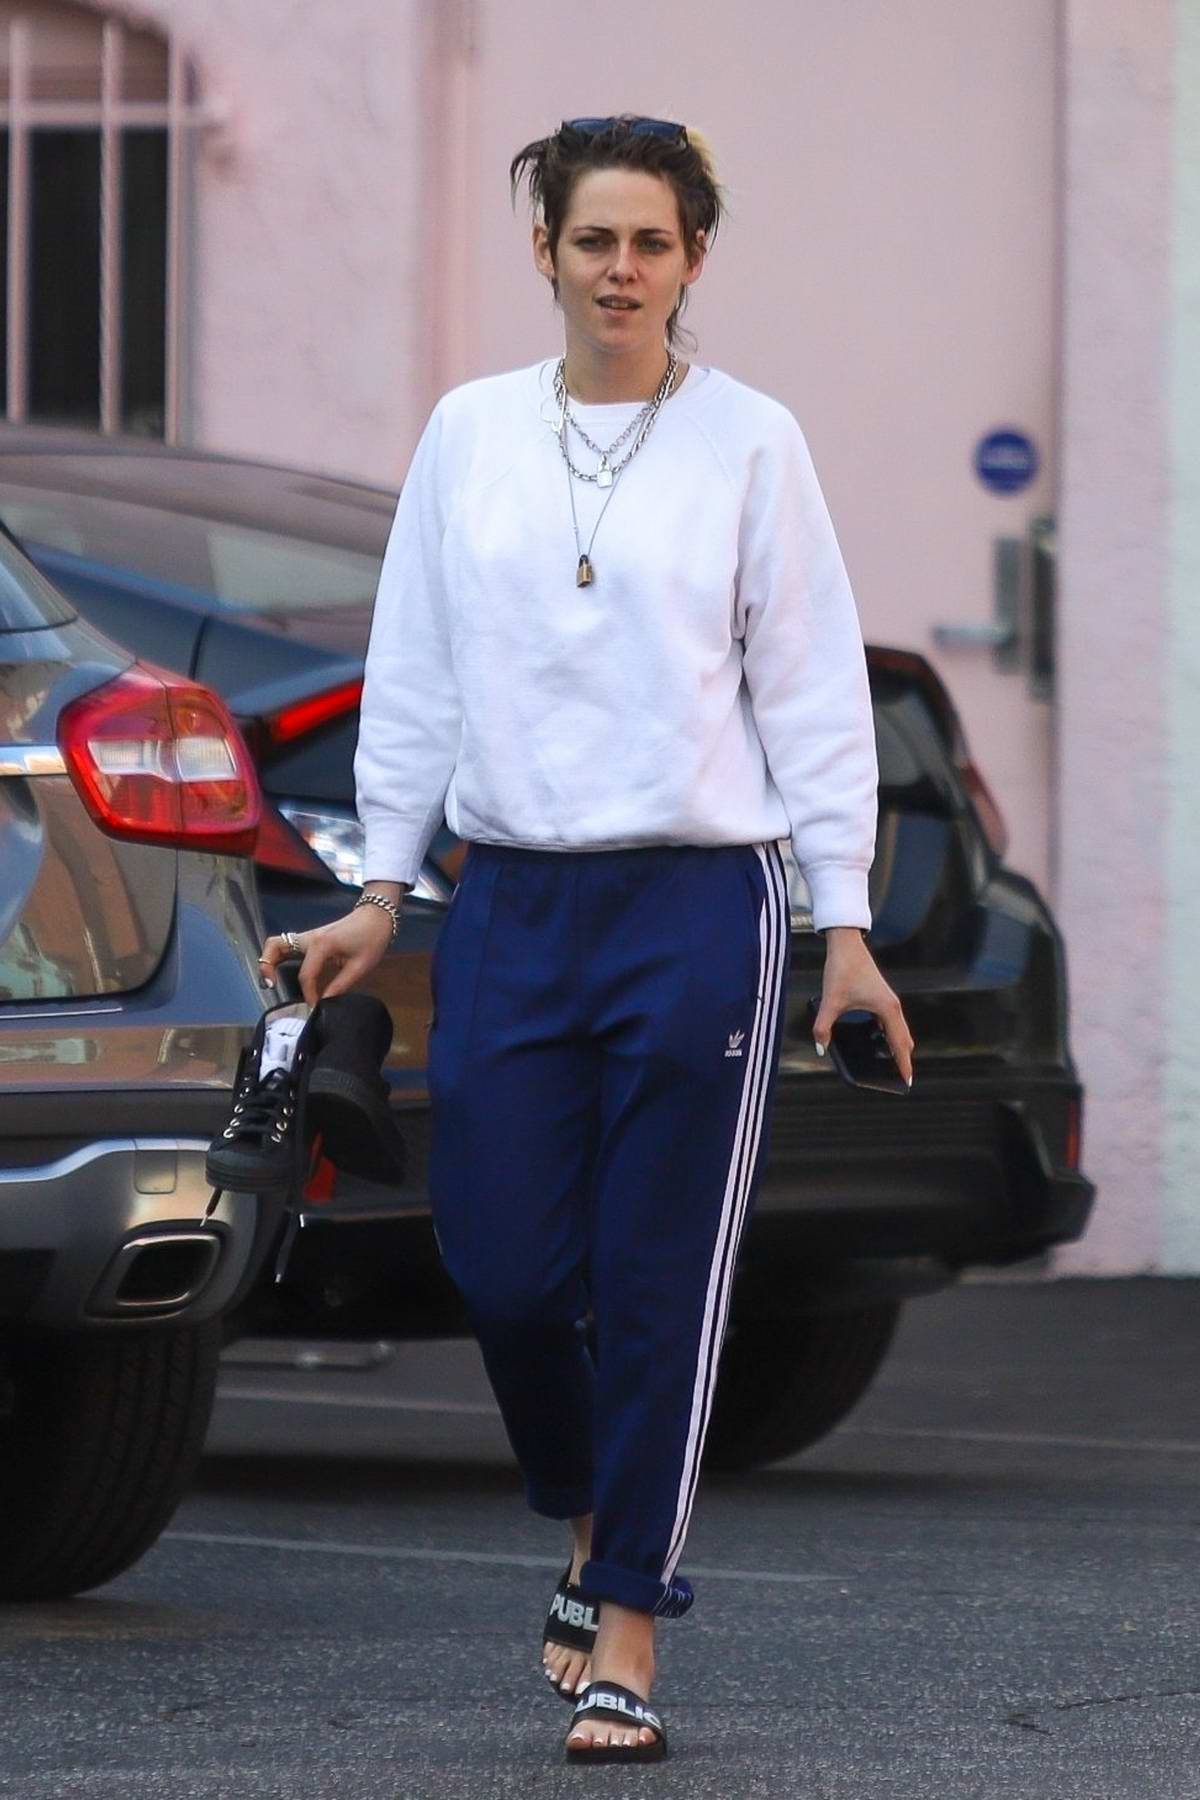 Kristen Stewart visits a Nail Salon with girlfriend Dylan Meyer in Hollywood, California